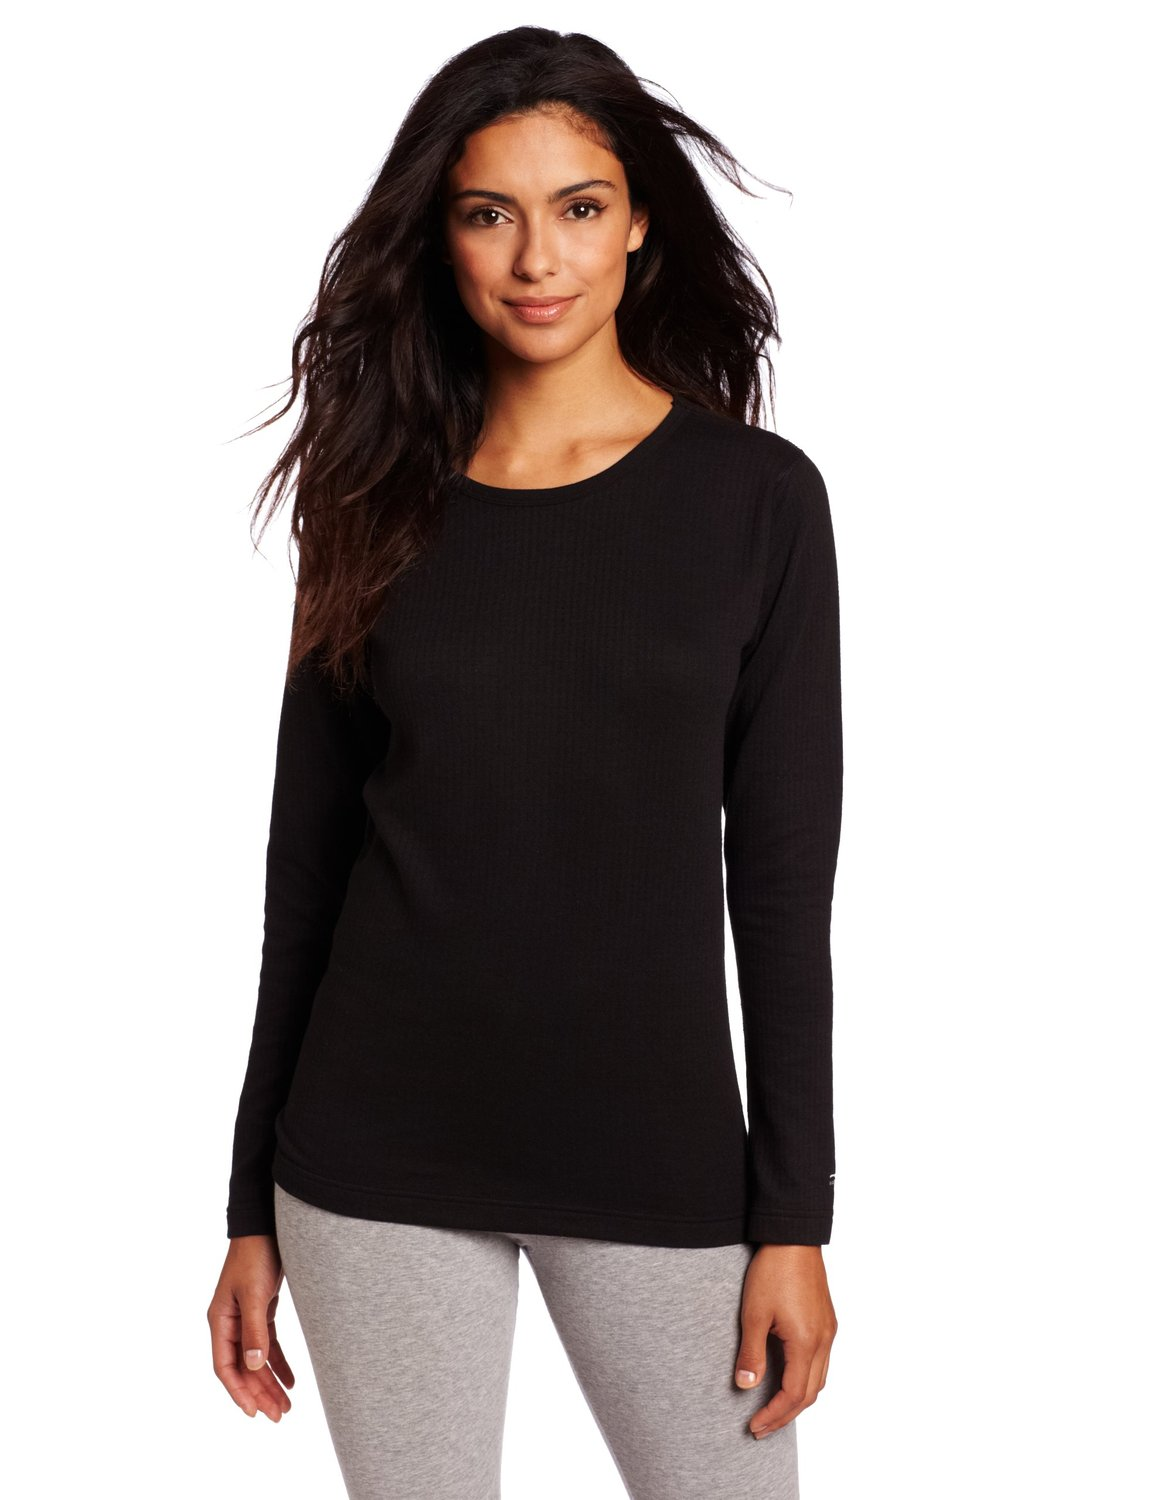 Duofold Women's Mid Weight Thermal Shirt